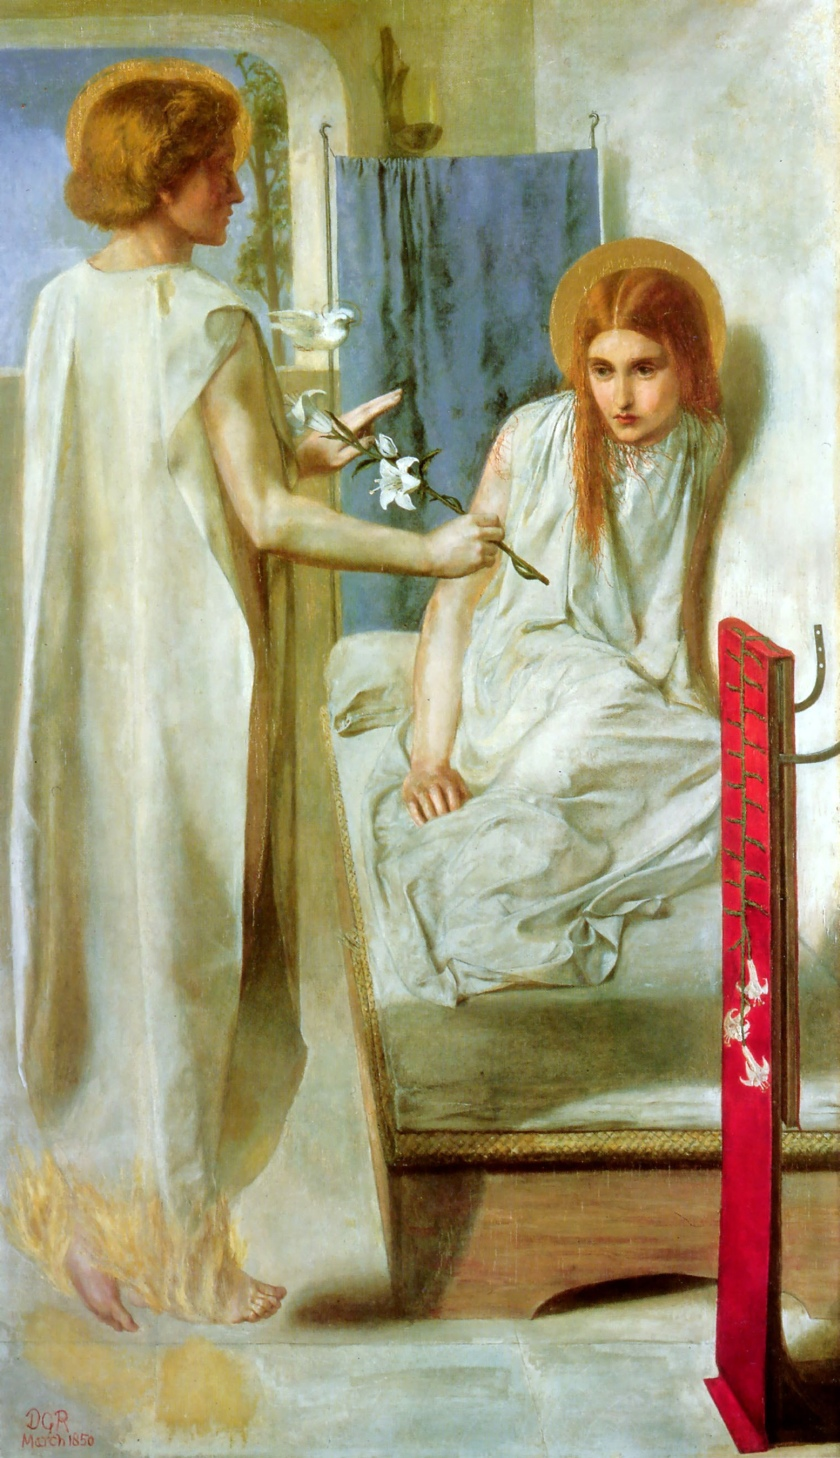 The Annunciation by Rossetti